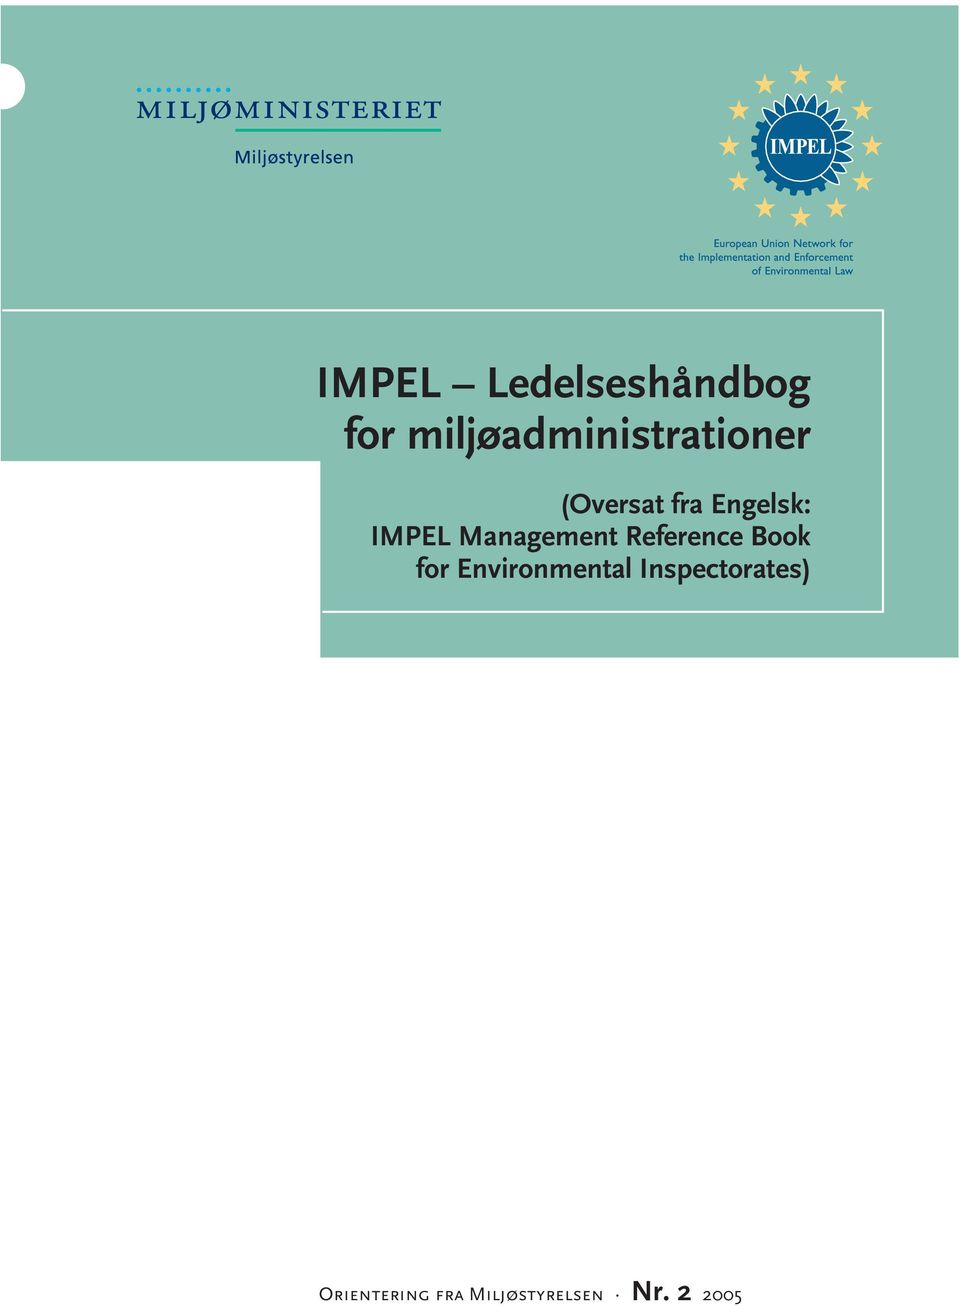 IMPEL Management Reference Book for